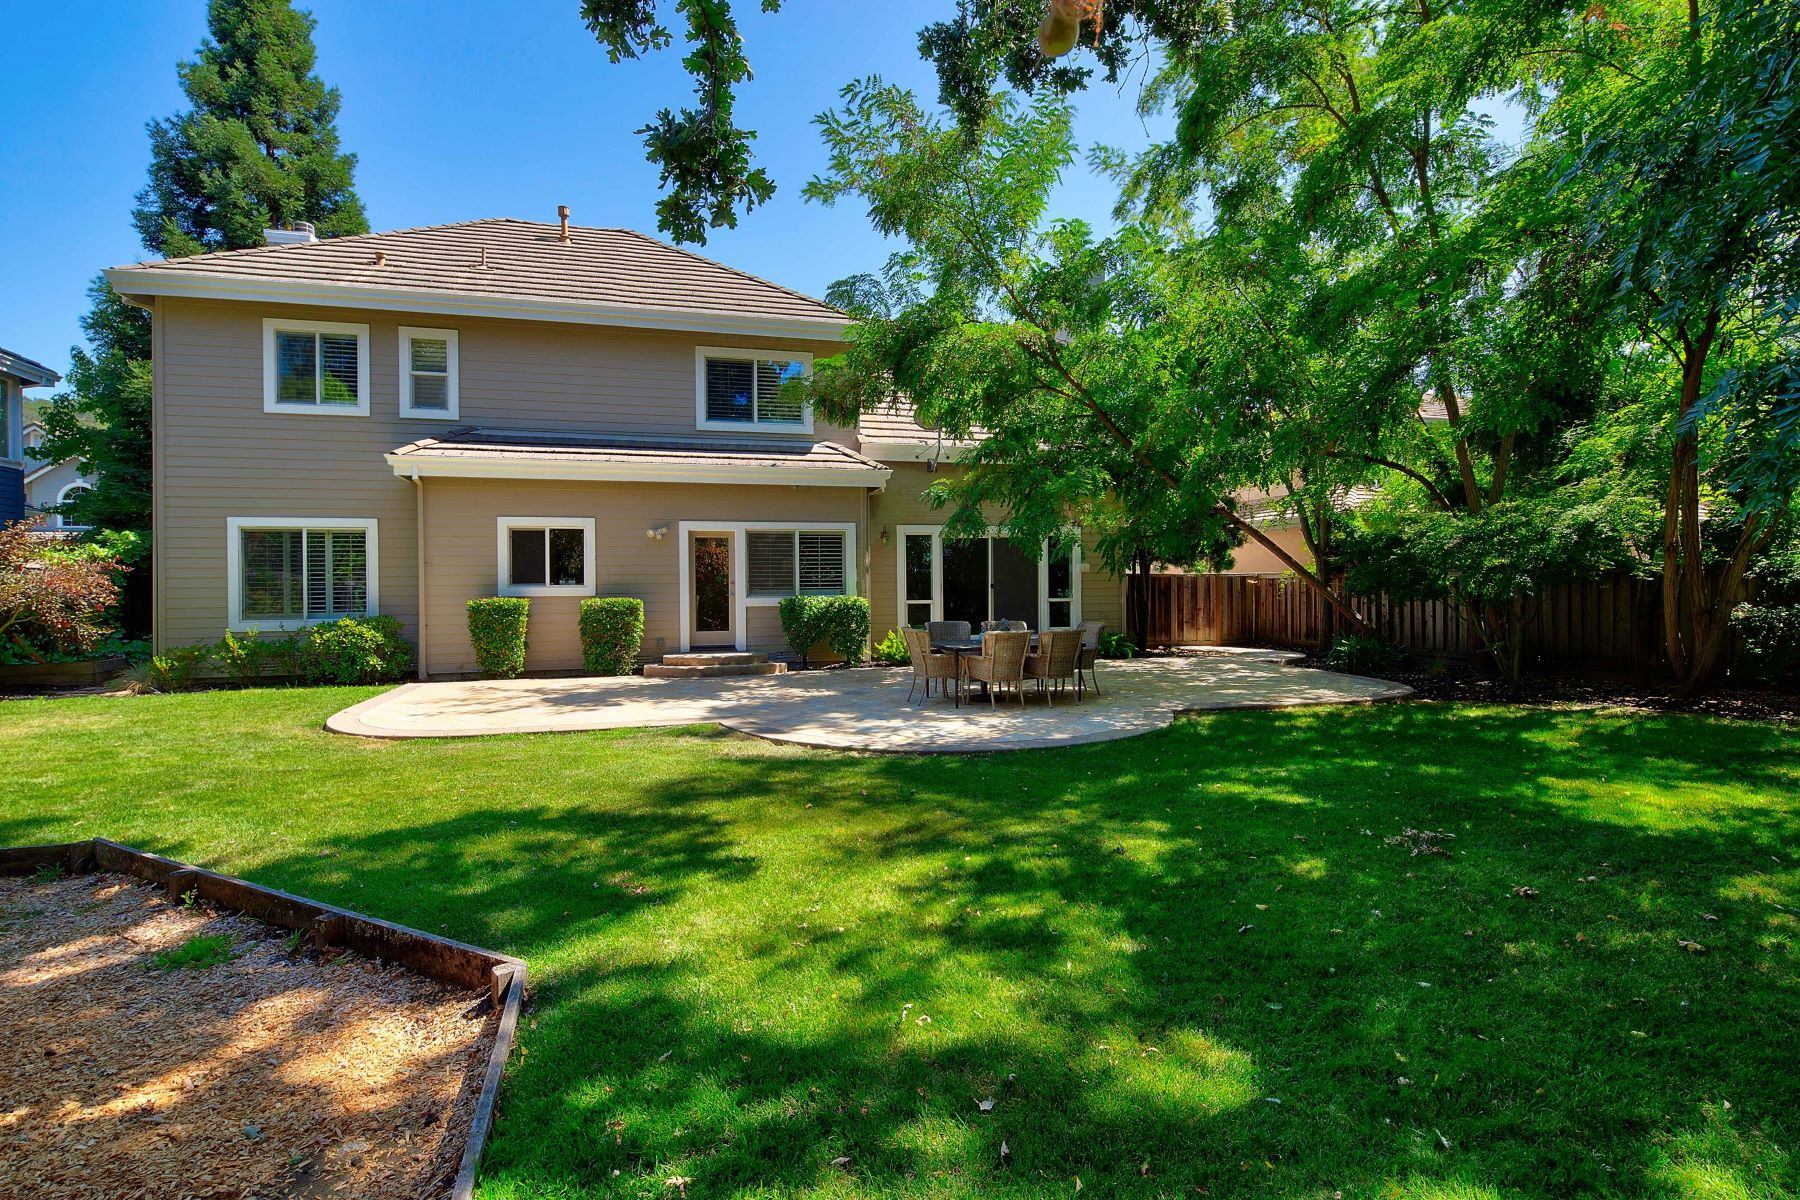 Single Family Homes for Sale at Beautiful Updated Home 410 Jeannie Court Danville, California 94526 United States